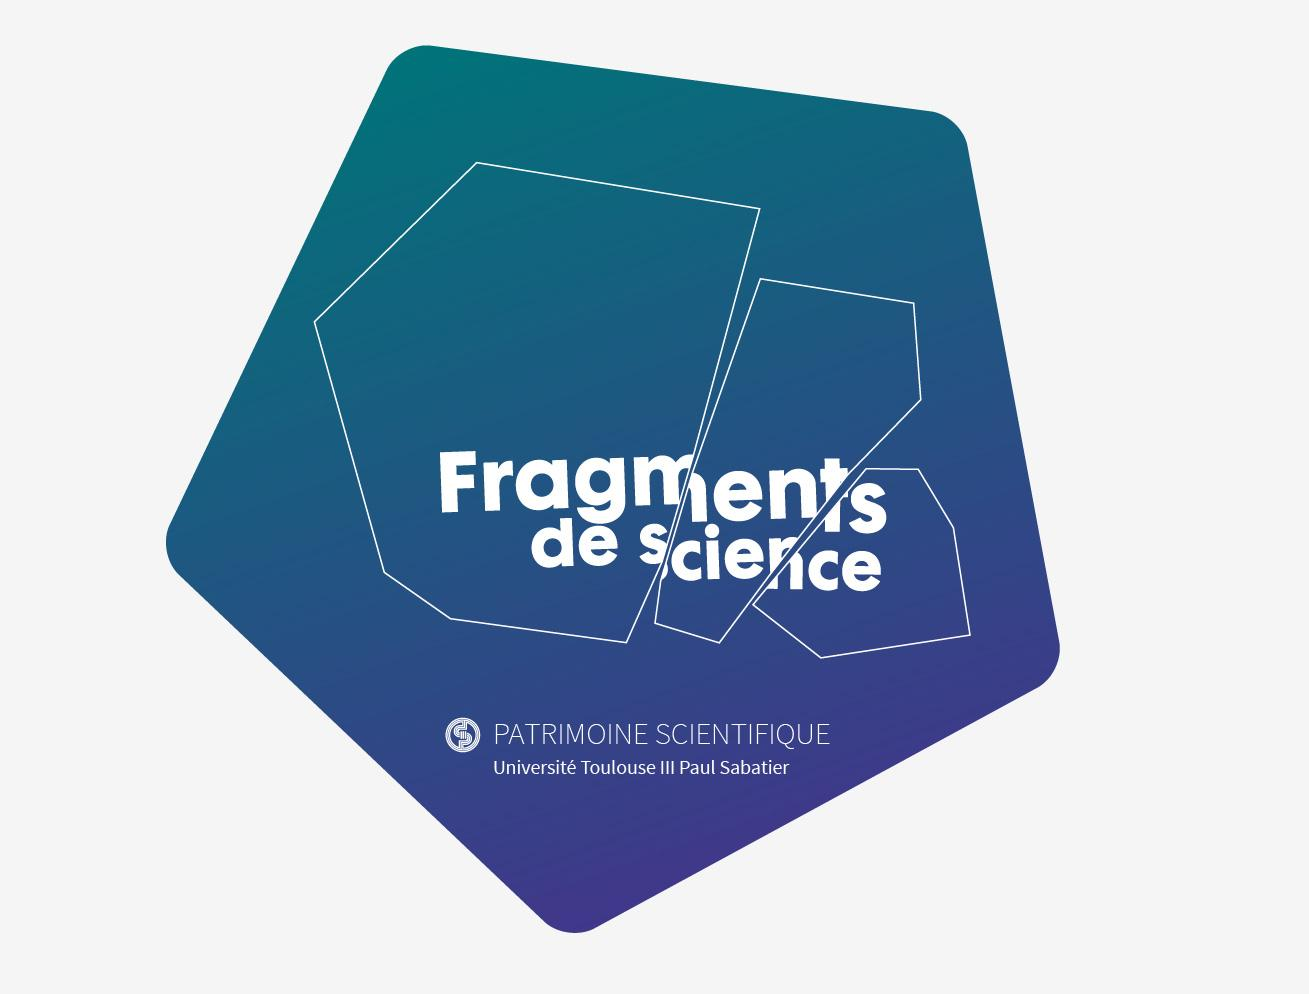 Fragments de science